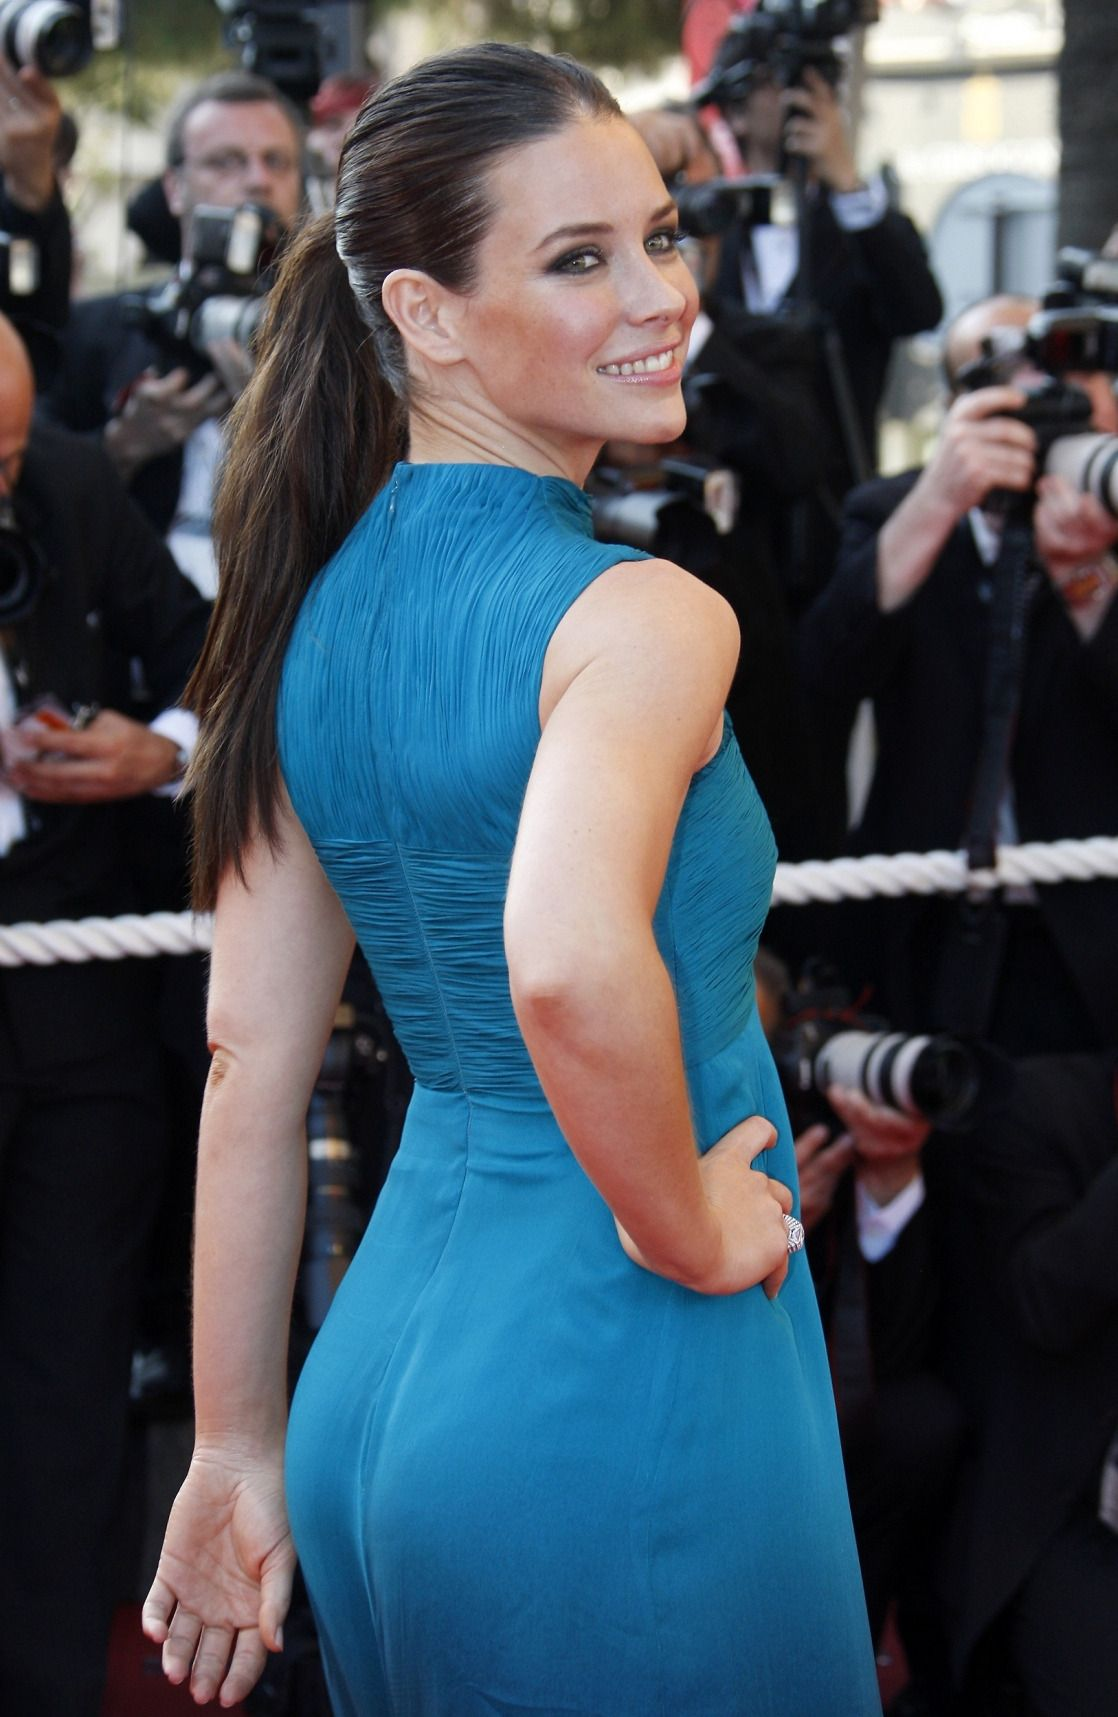 evangeline lilly ass